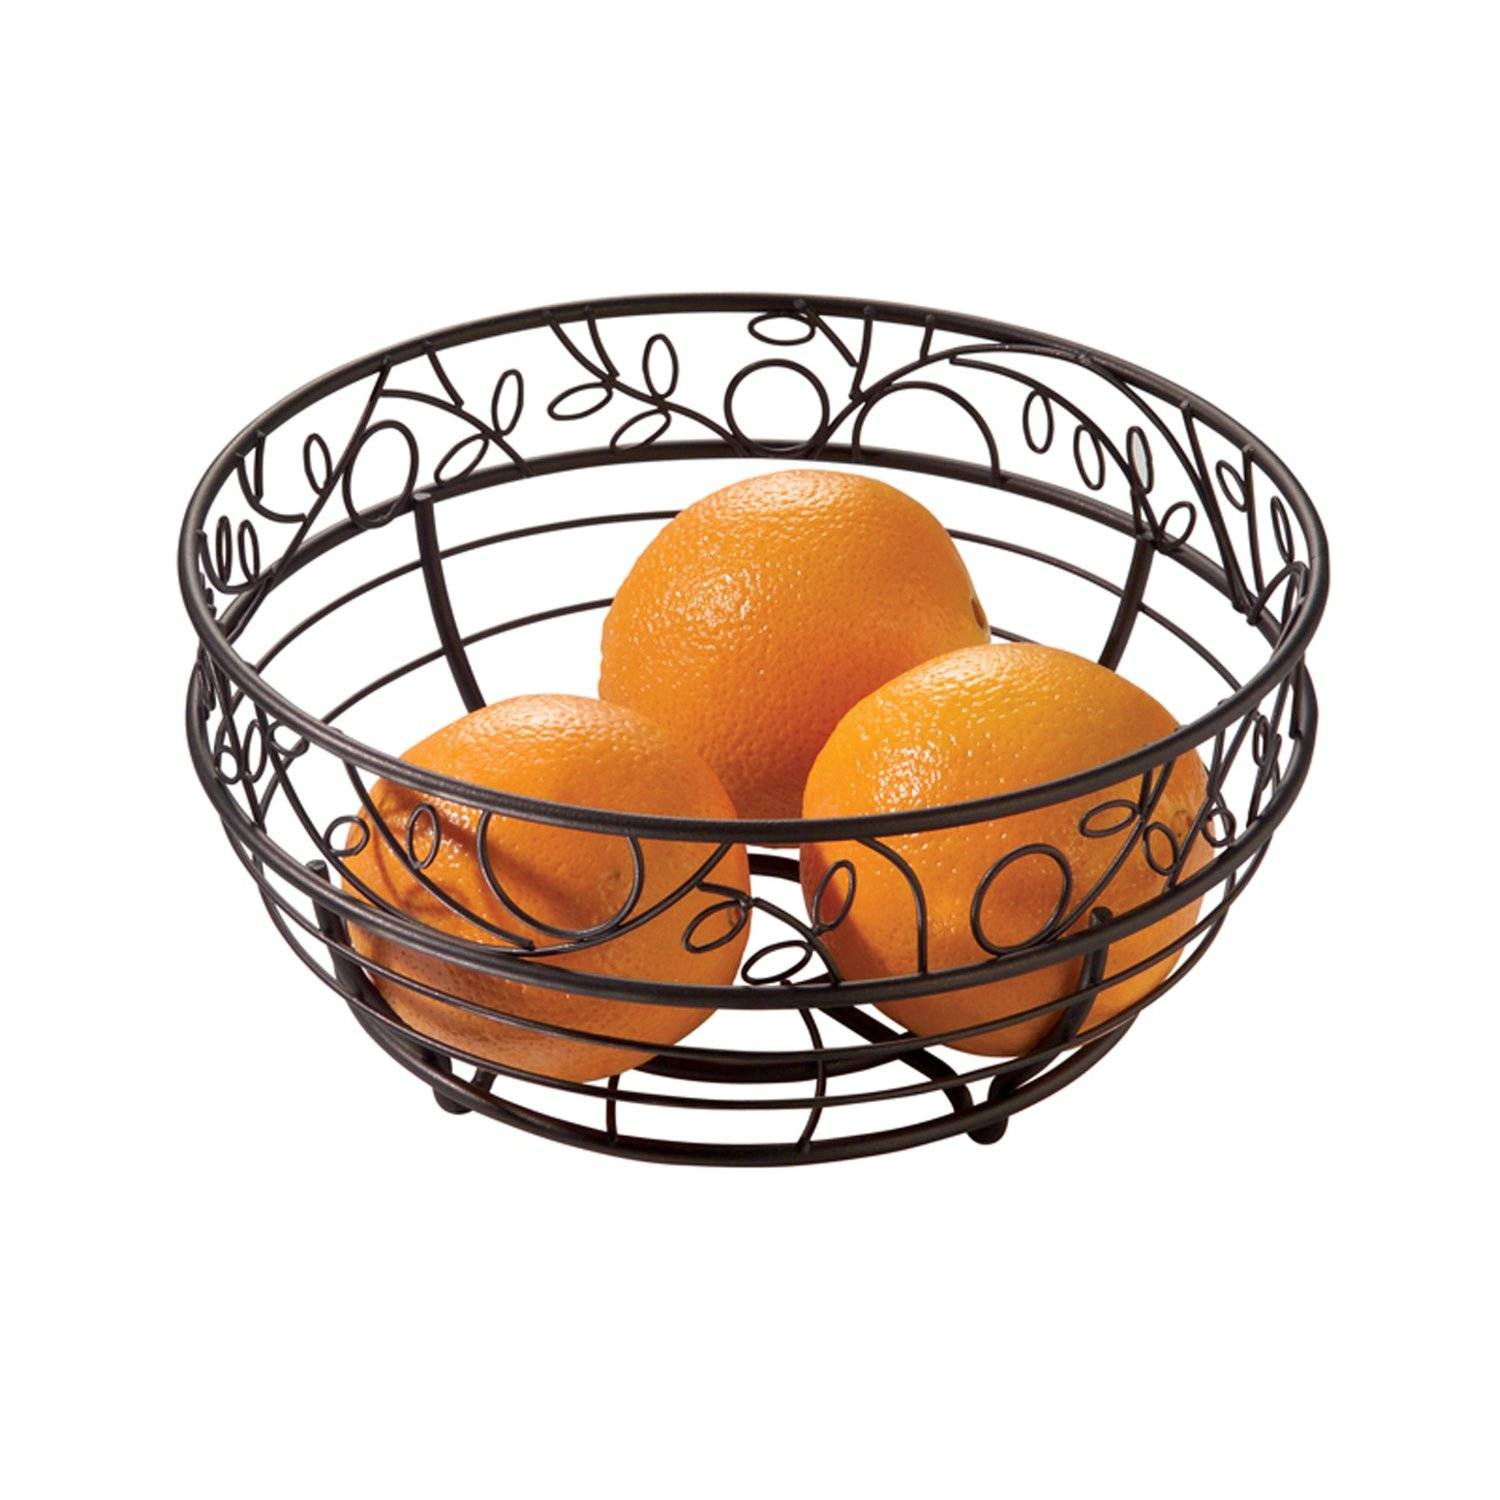 InterDesign Twigz Fruit Bowl Bronze